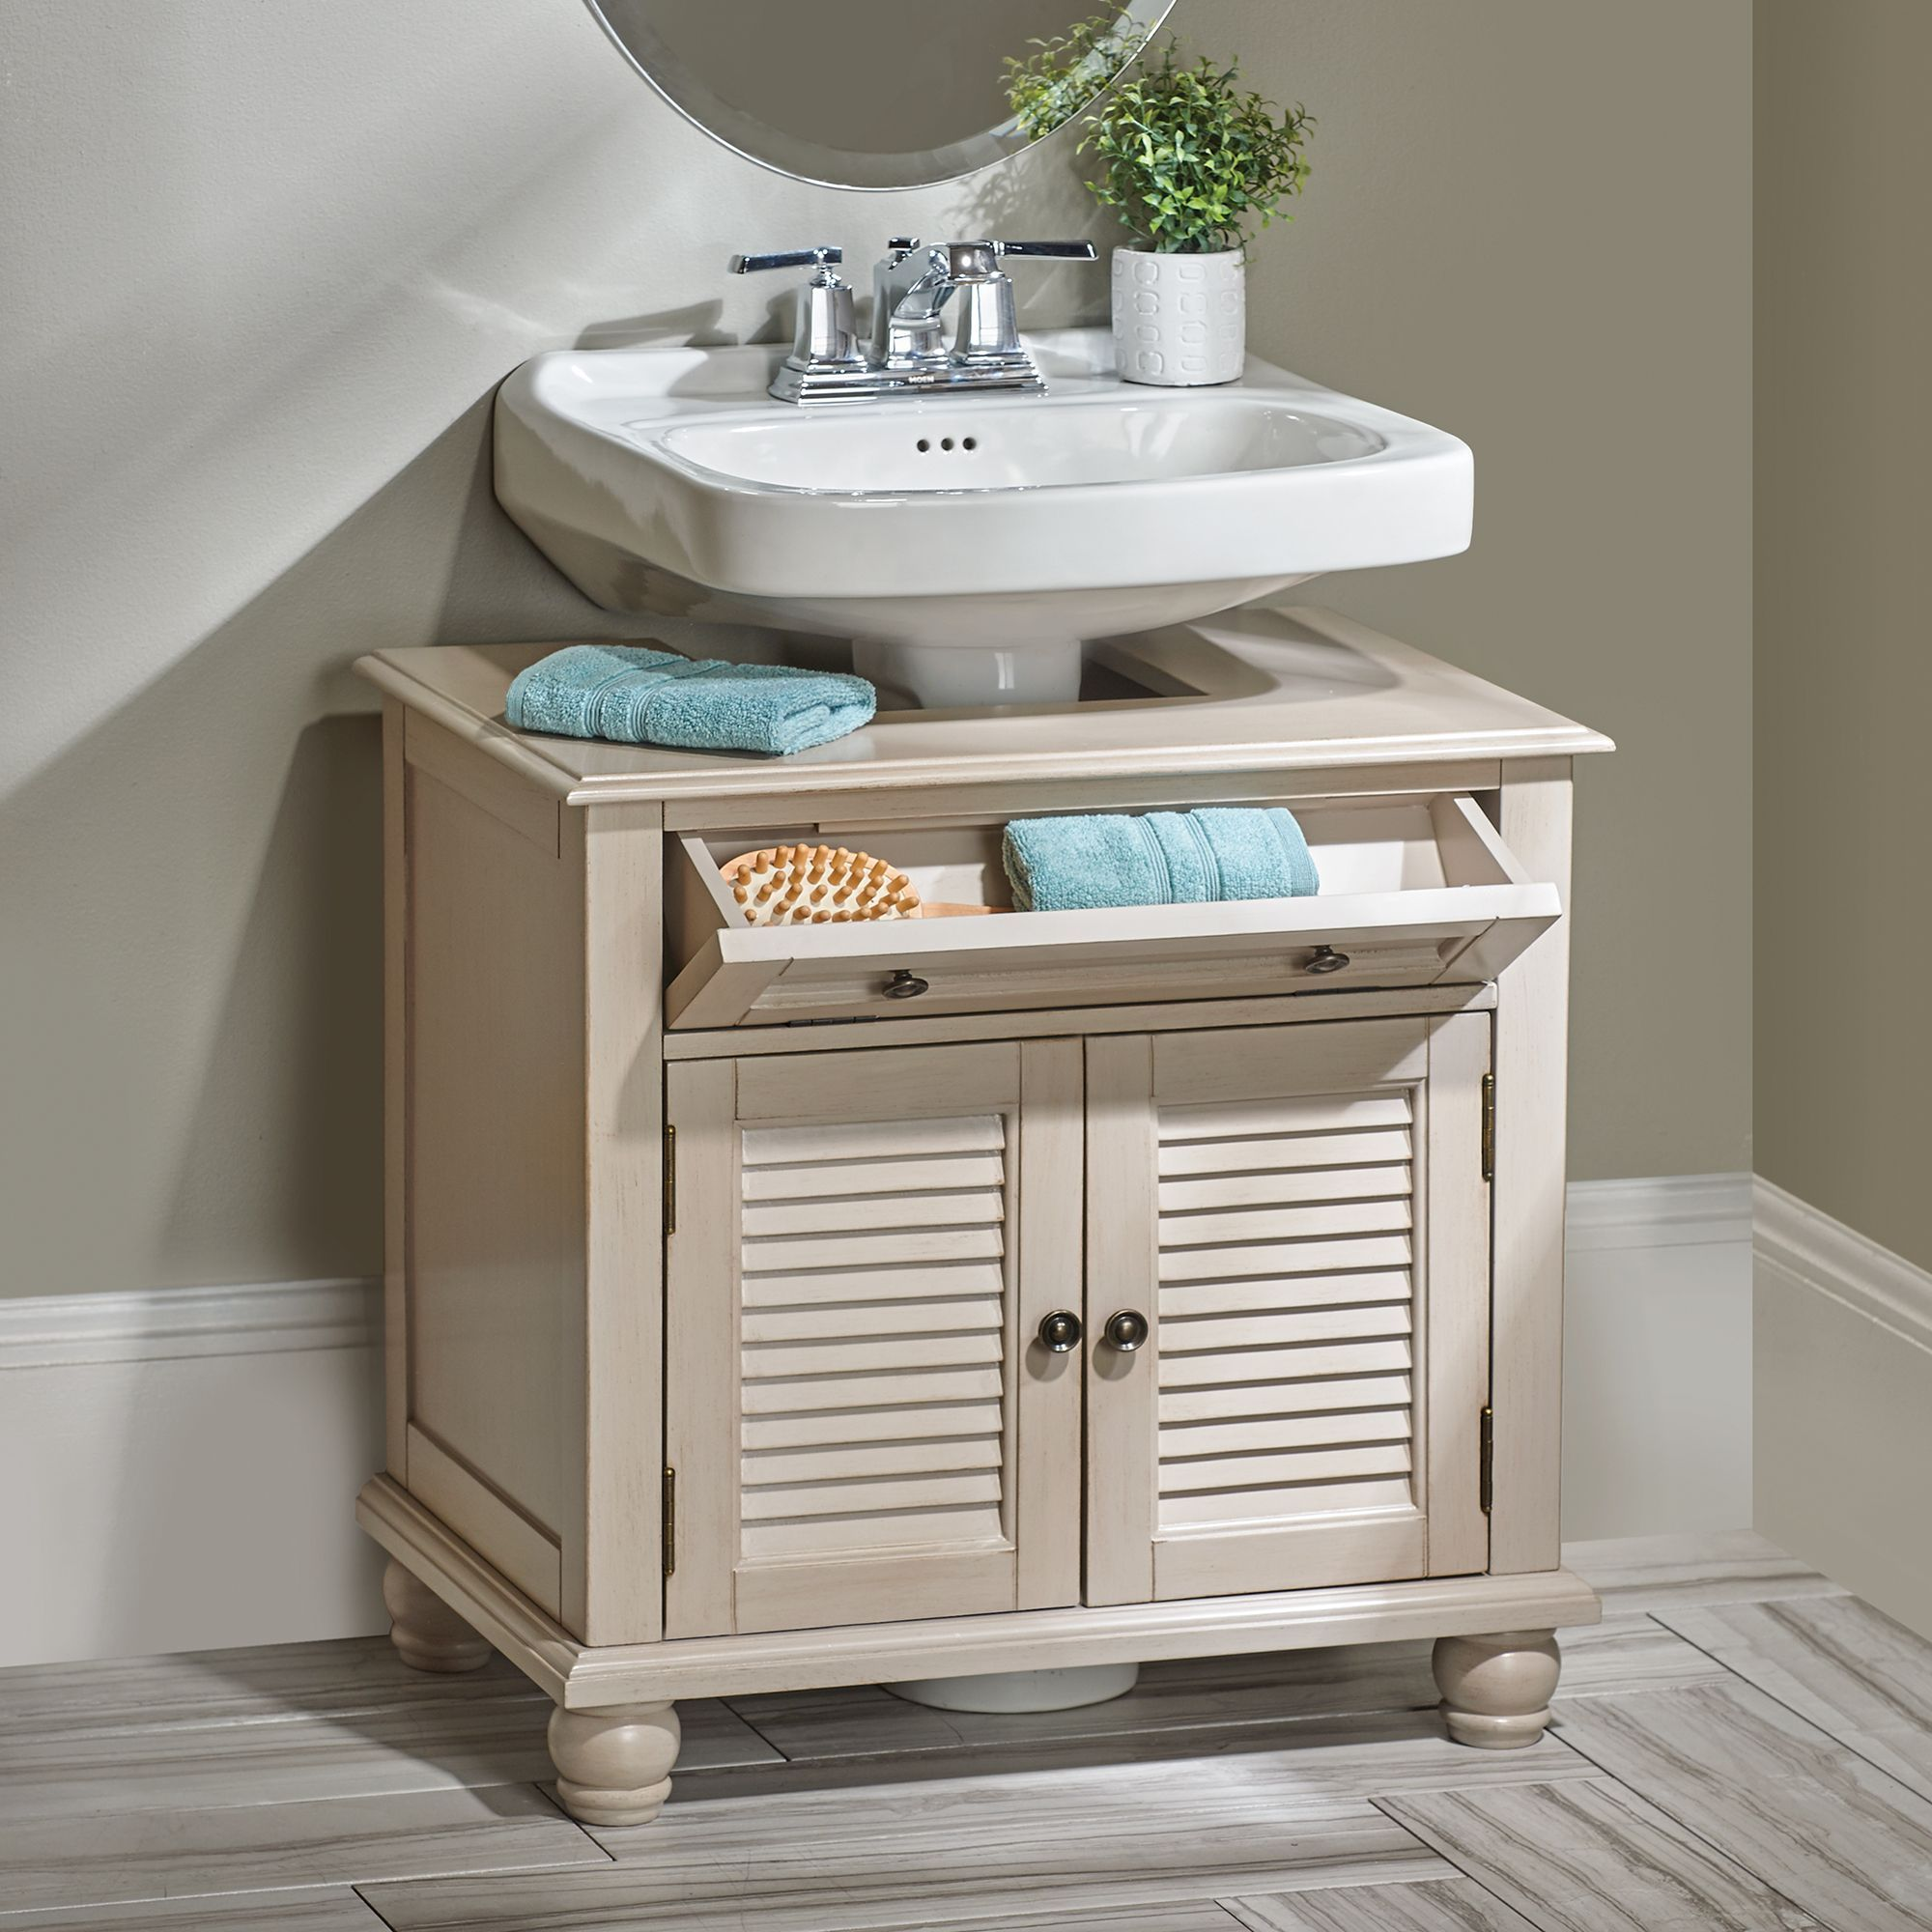 Newport Louvered Pedestal Sink Cabinet Pedestal Sink Personal Taste And Bathroom Storage